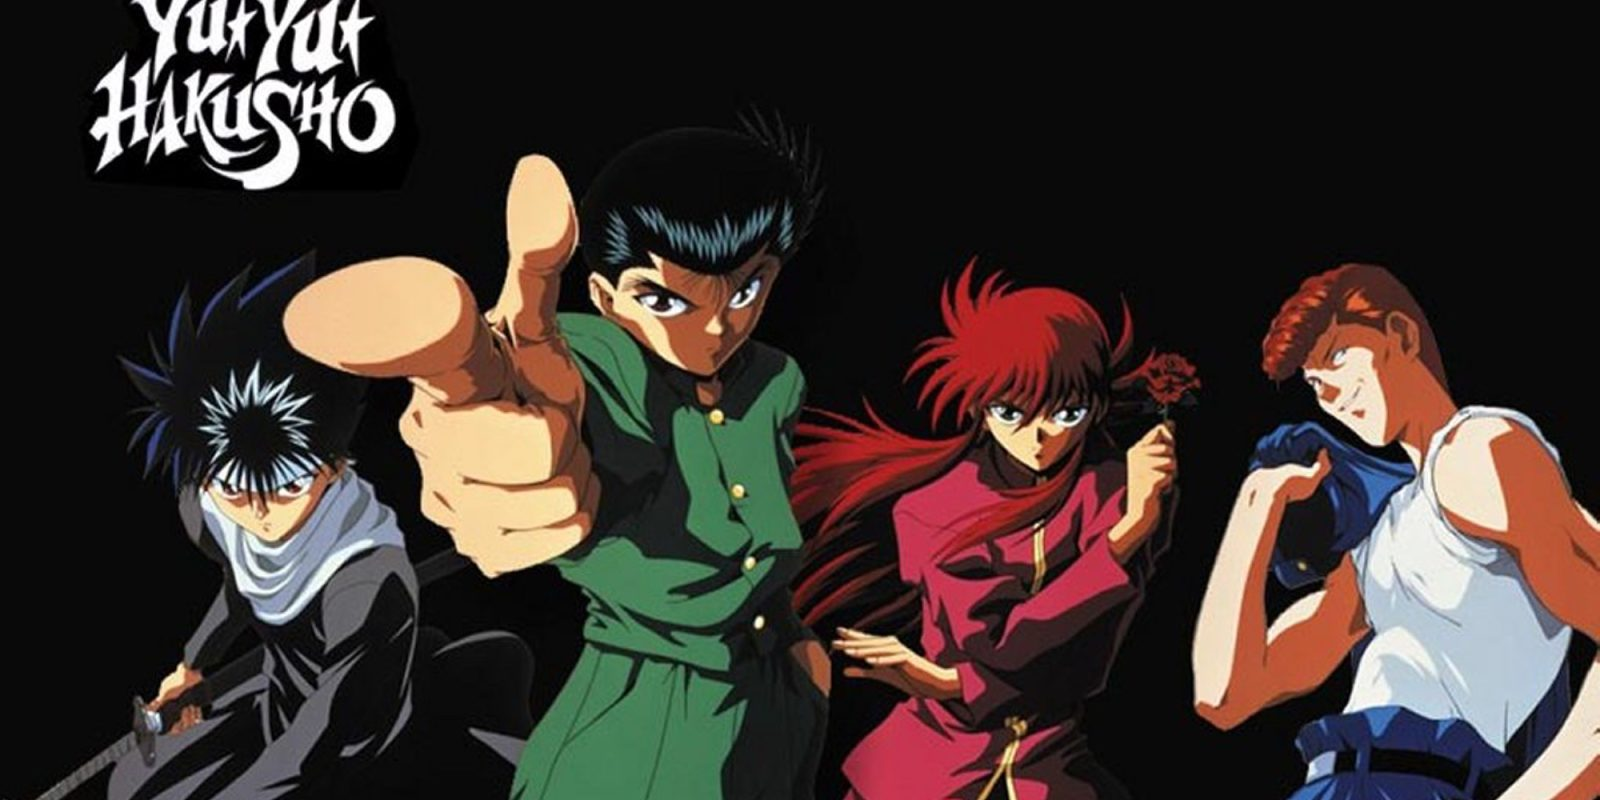 score hd digital downloads of the first season of yu yu hakusho and more for free